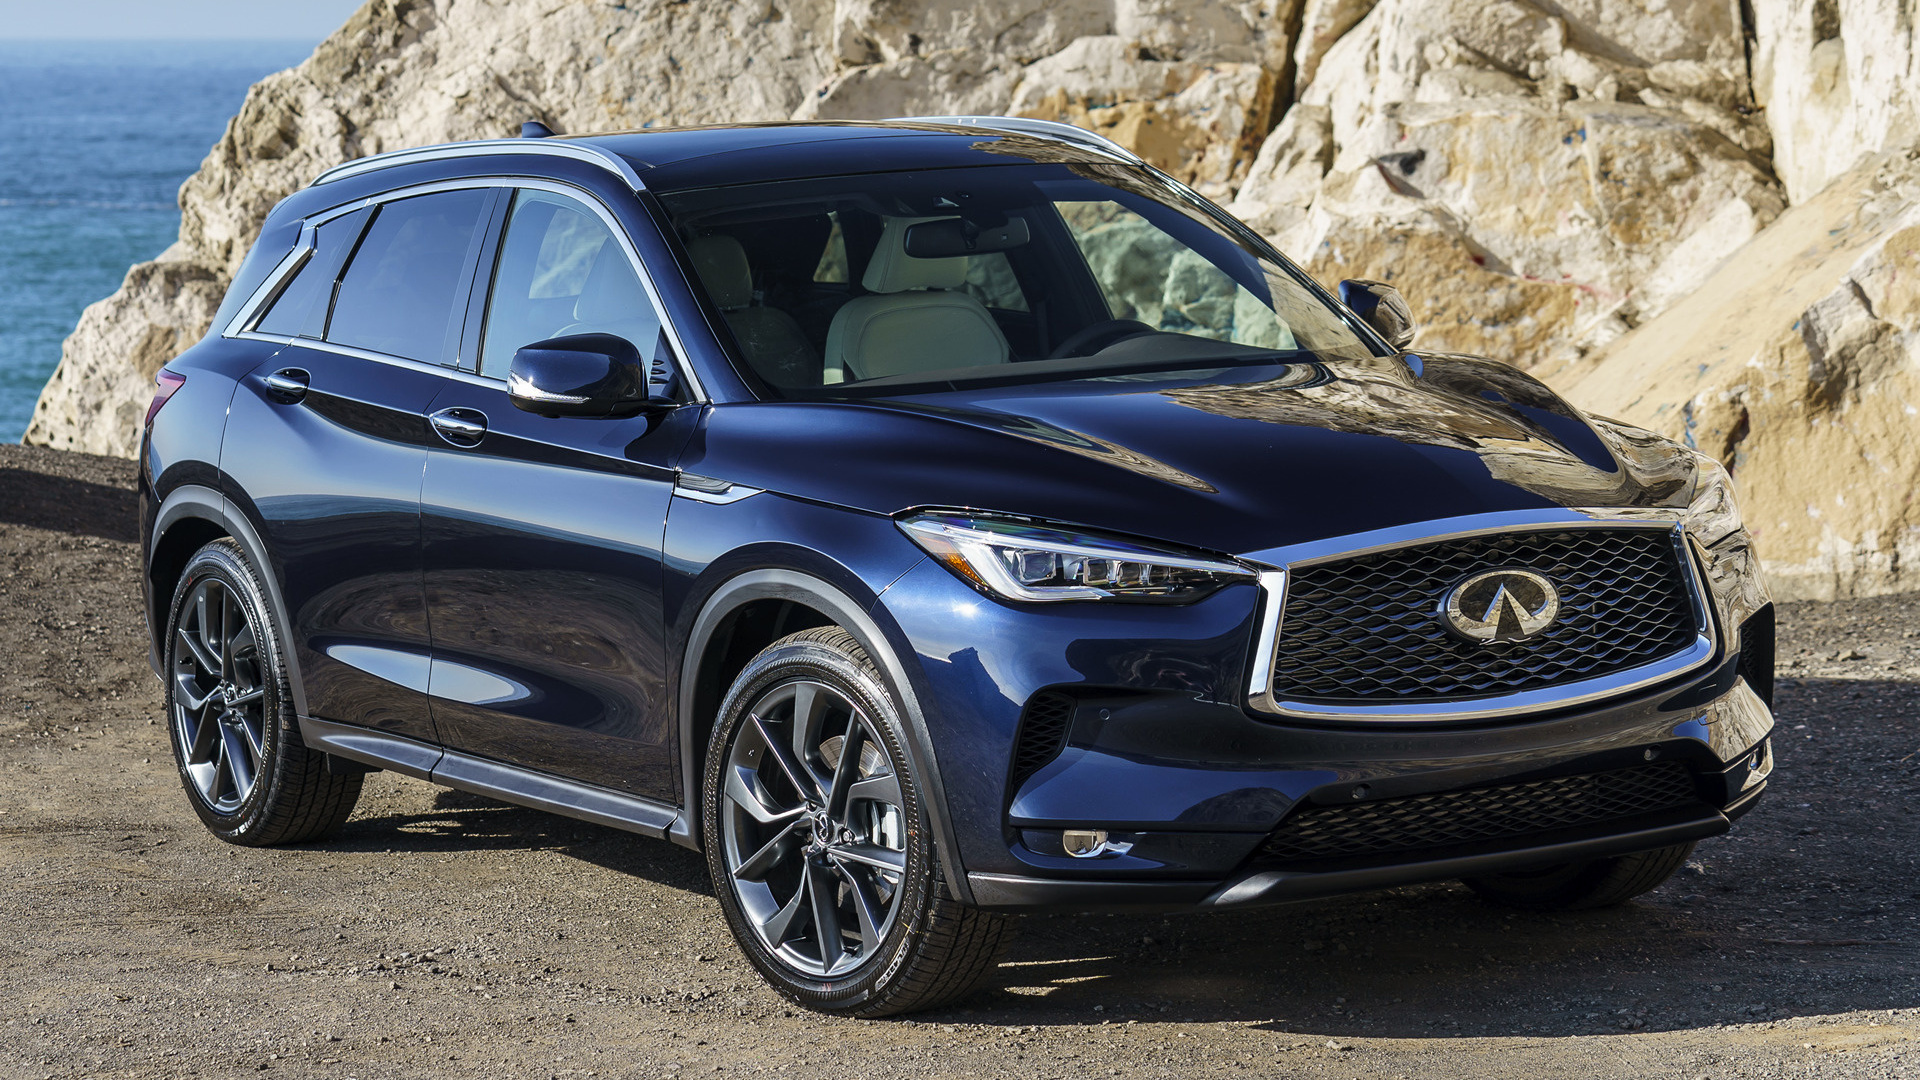 2019 Infiniti QX50 - Wallpapers and HD Images | Car Pixel